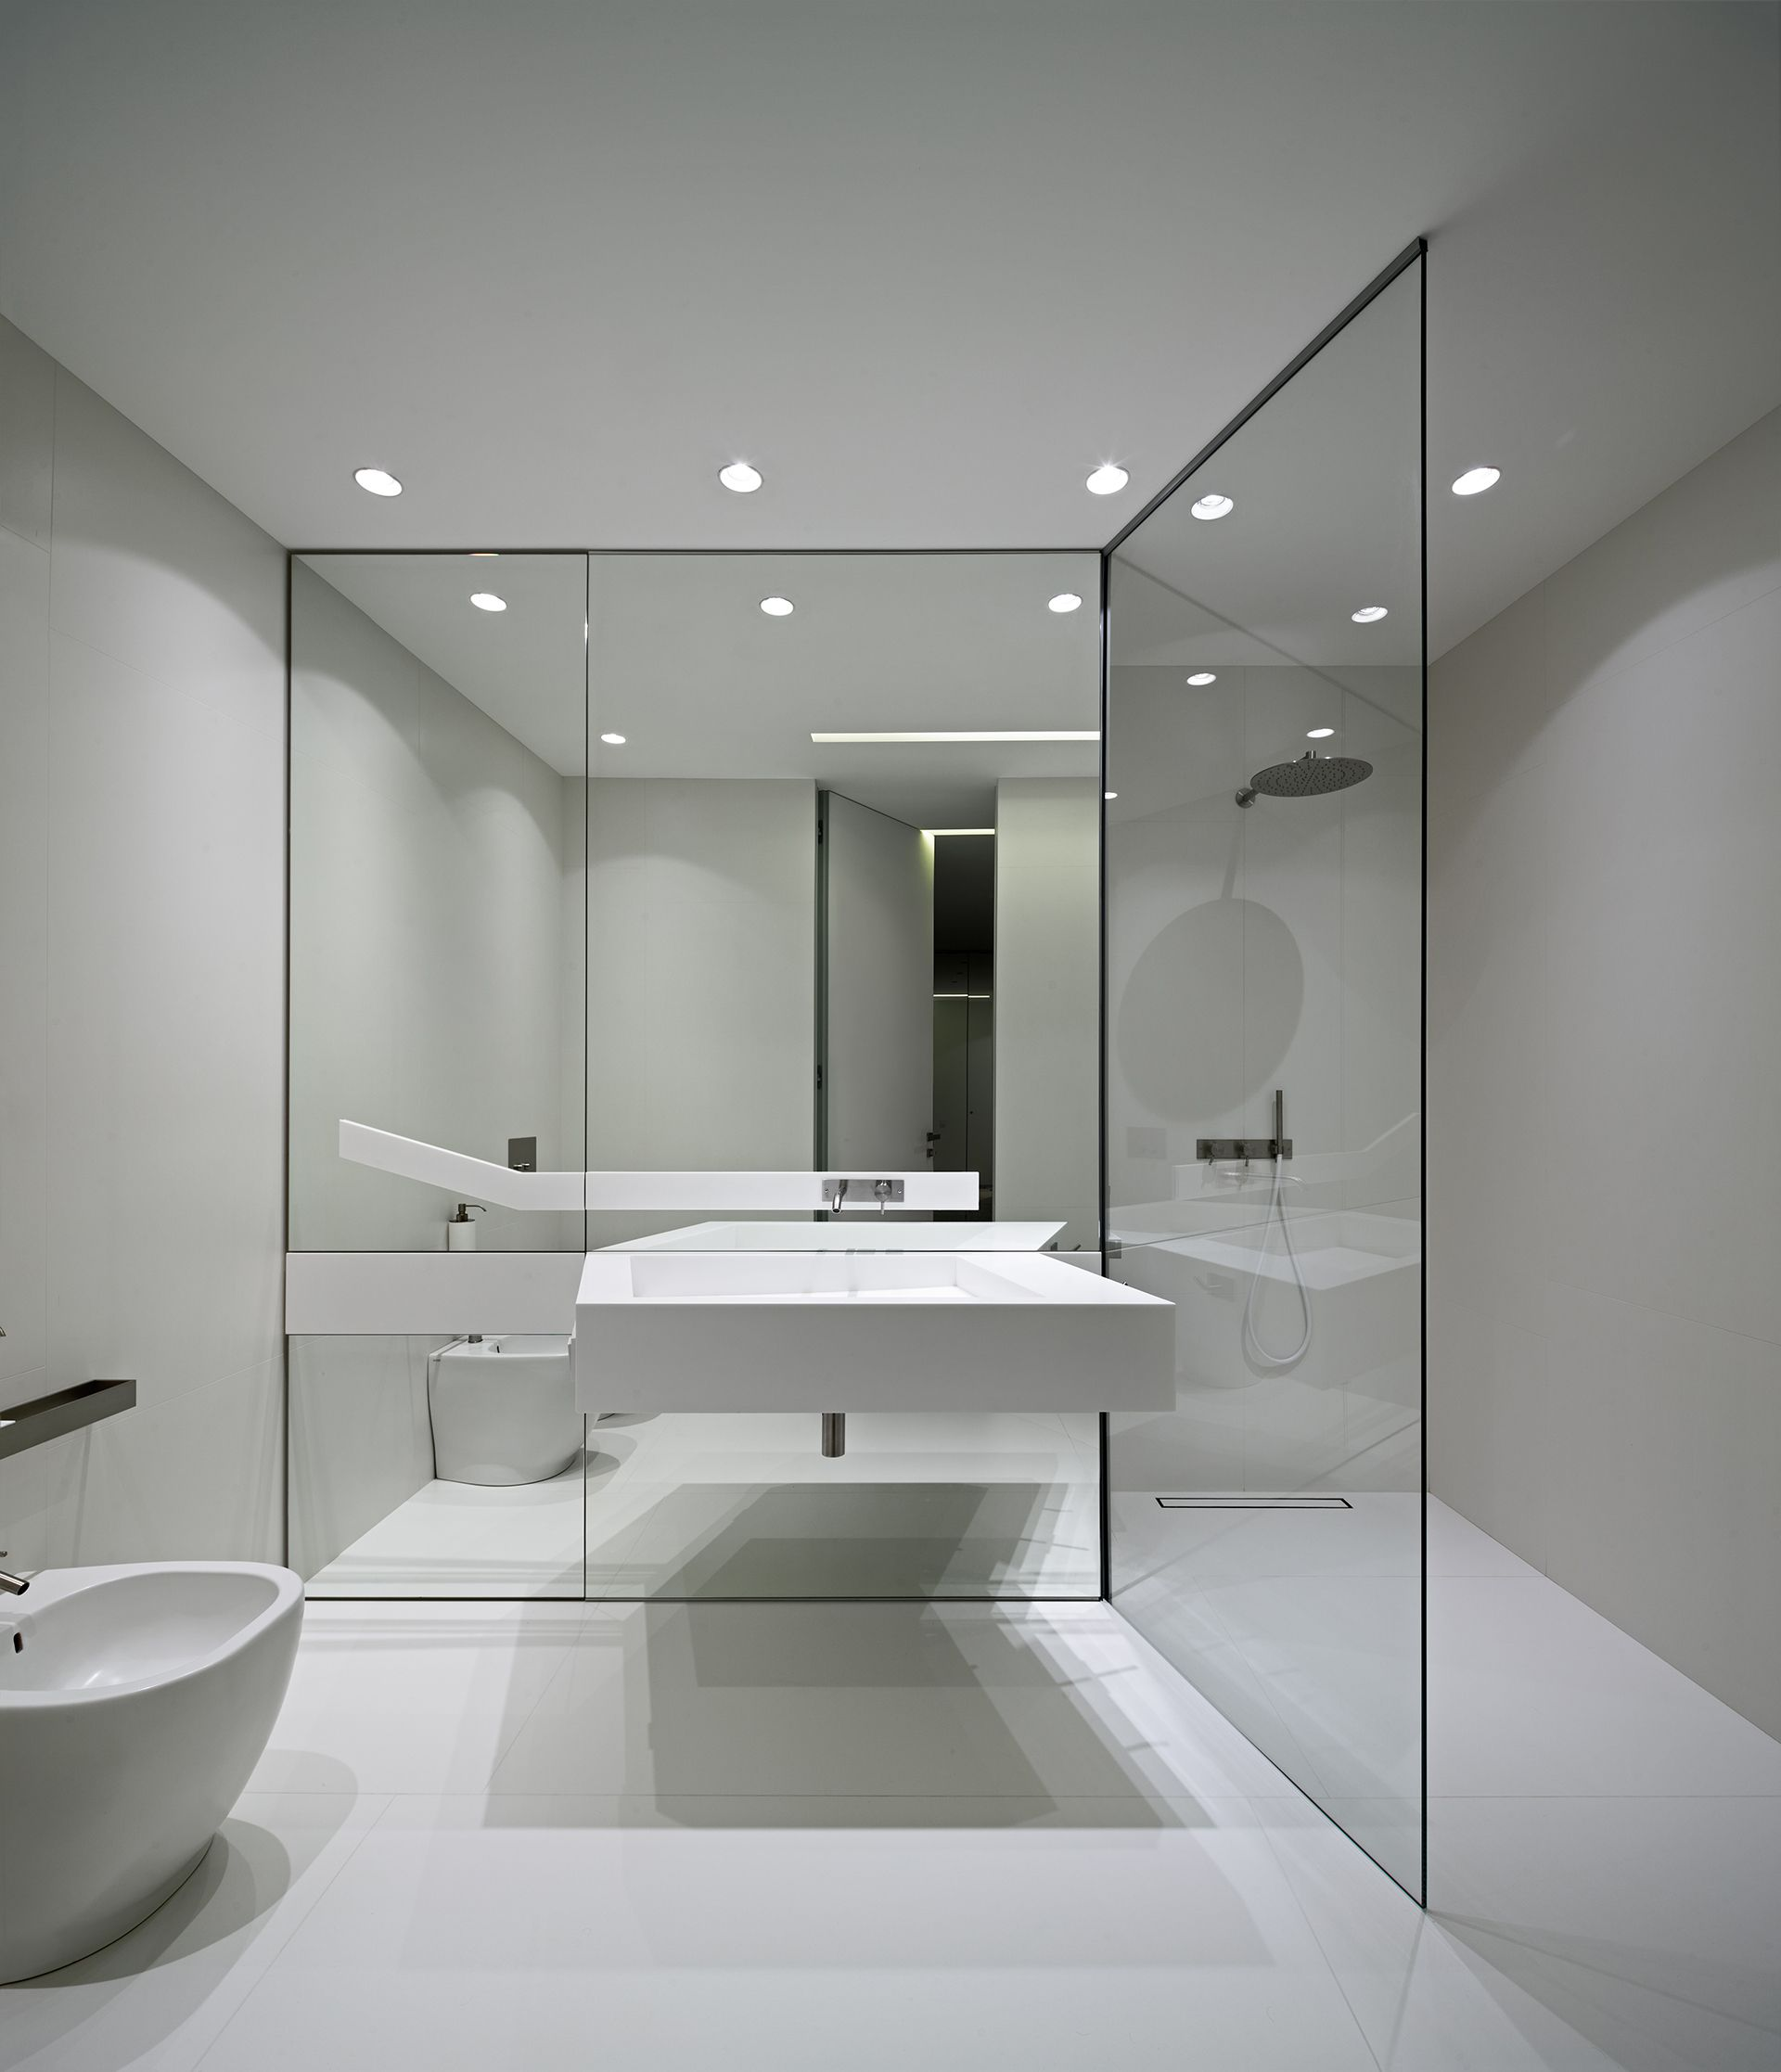 Pin By Francisco Murillo Ascui On Banos Bathroom Style Bathroom Interior Design Bathroom Interior